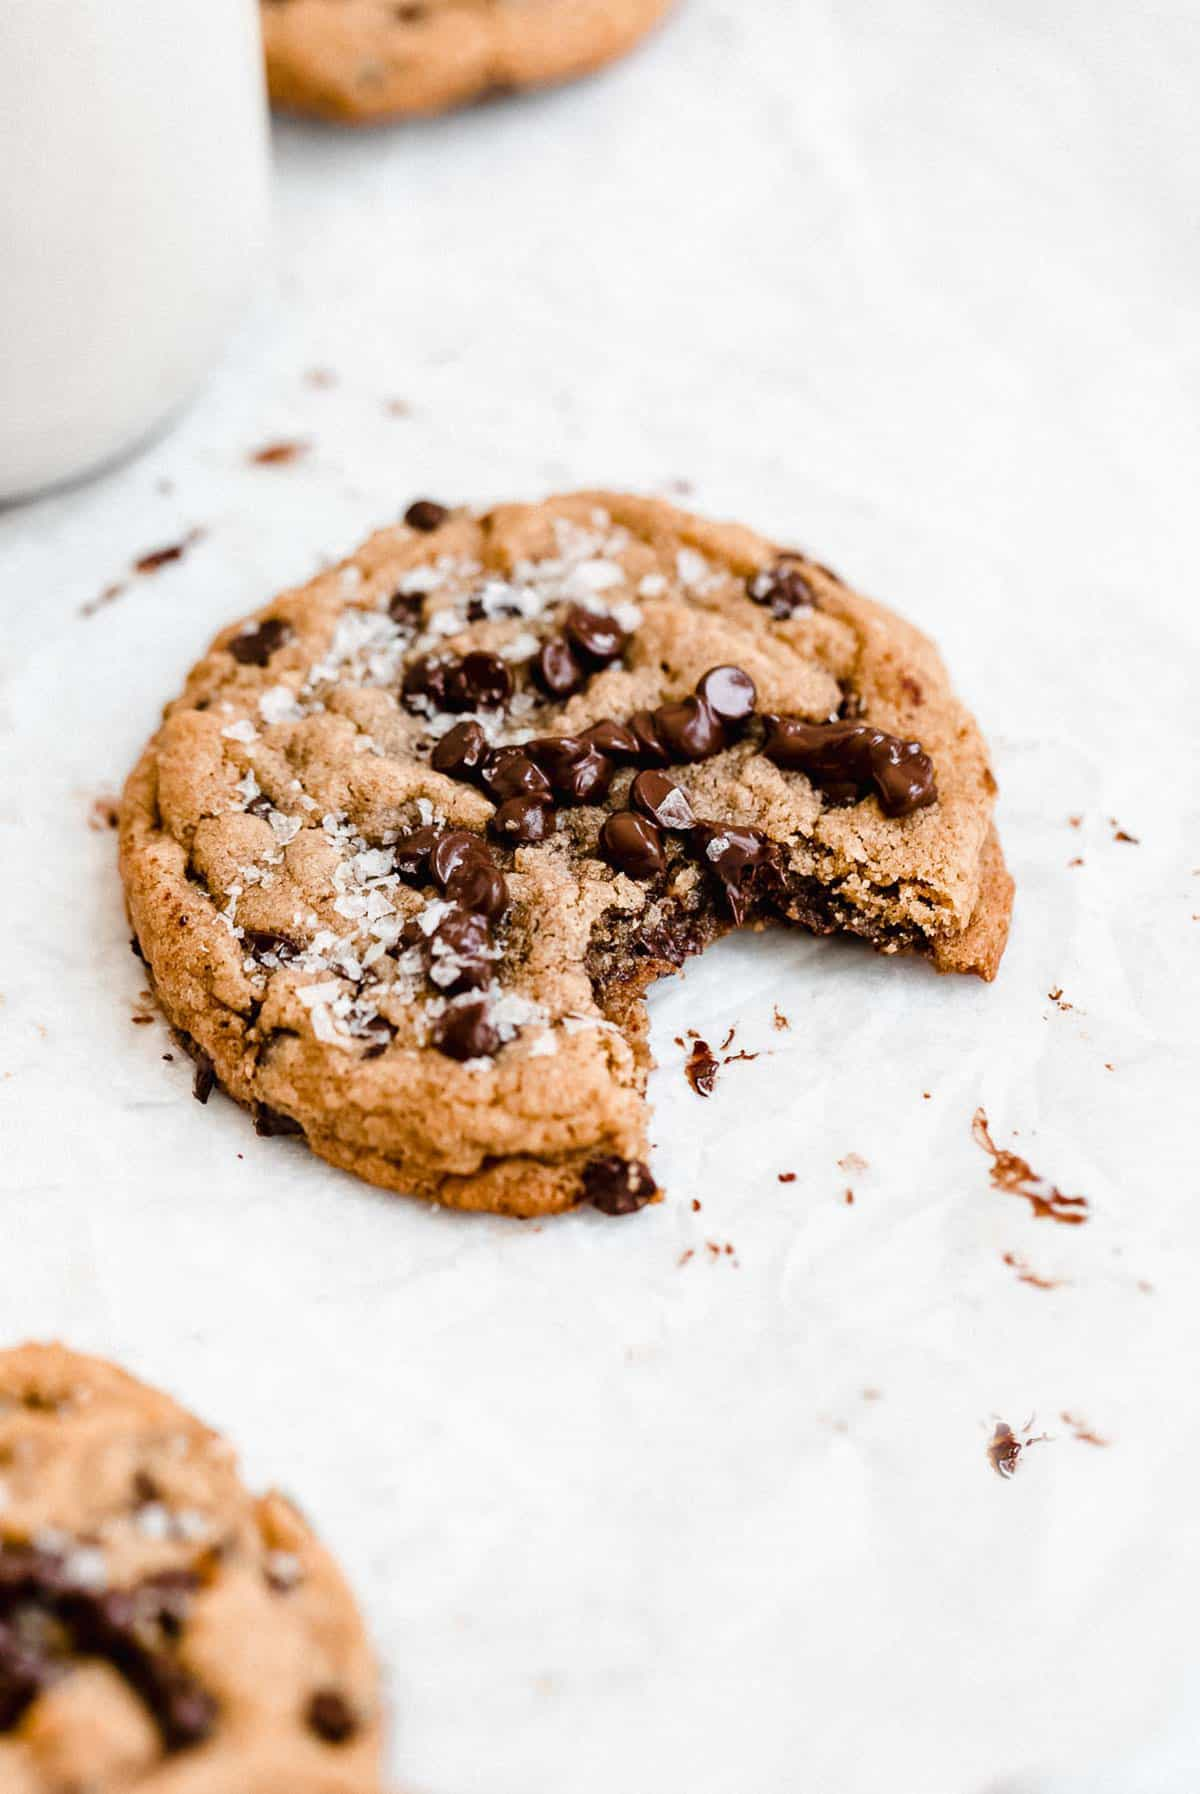 one cookie with a bite taken out on parchment paper